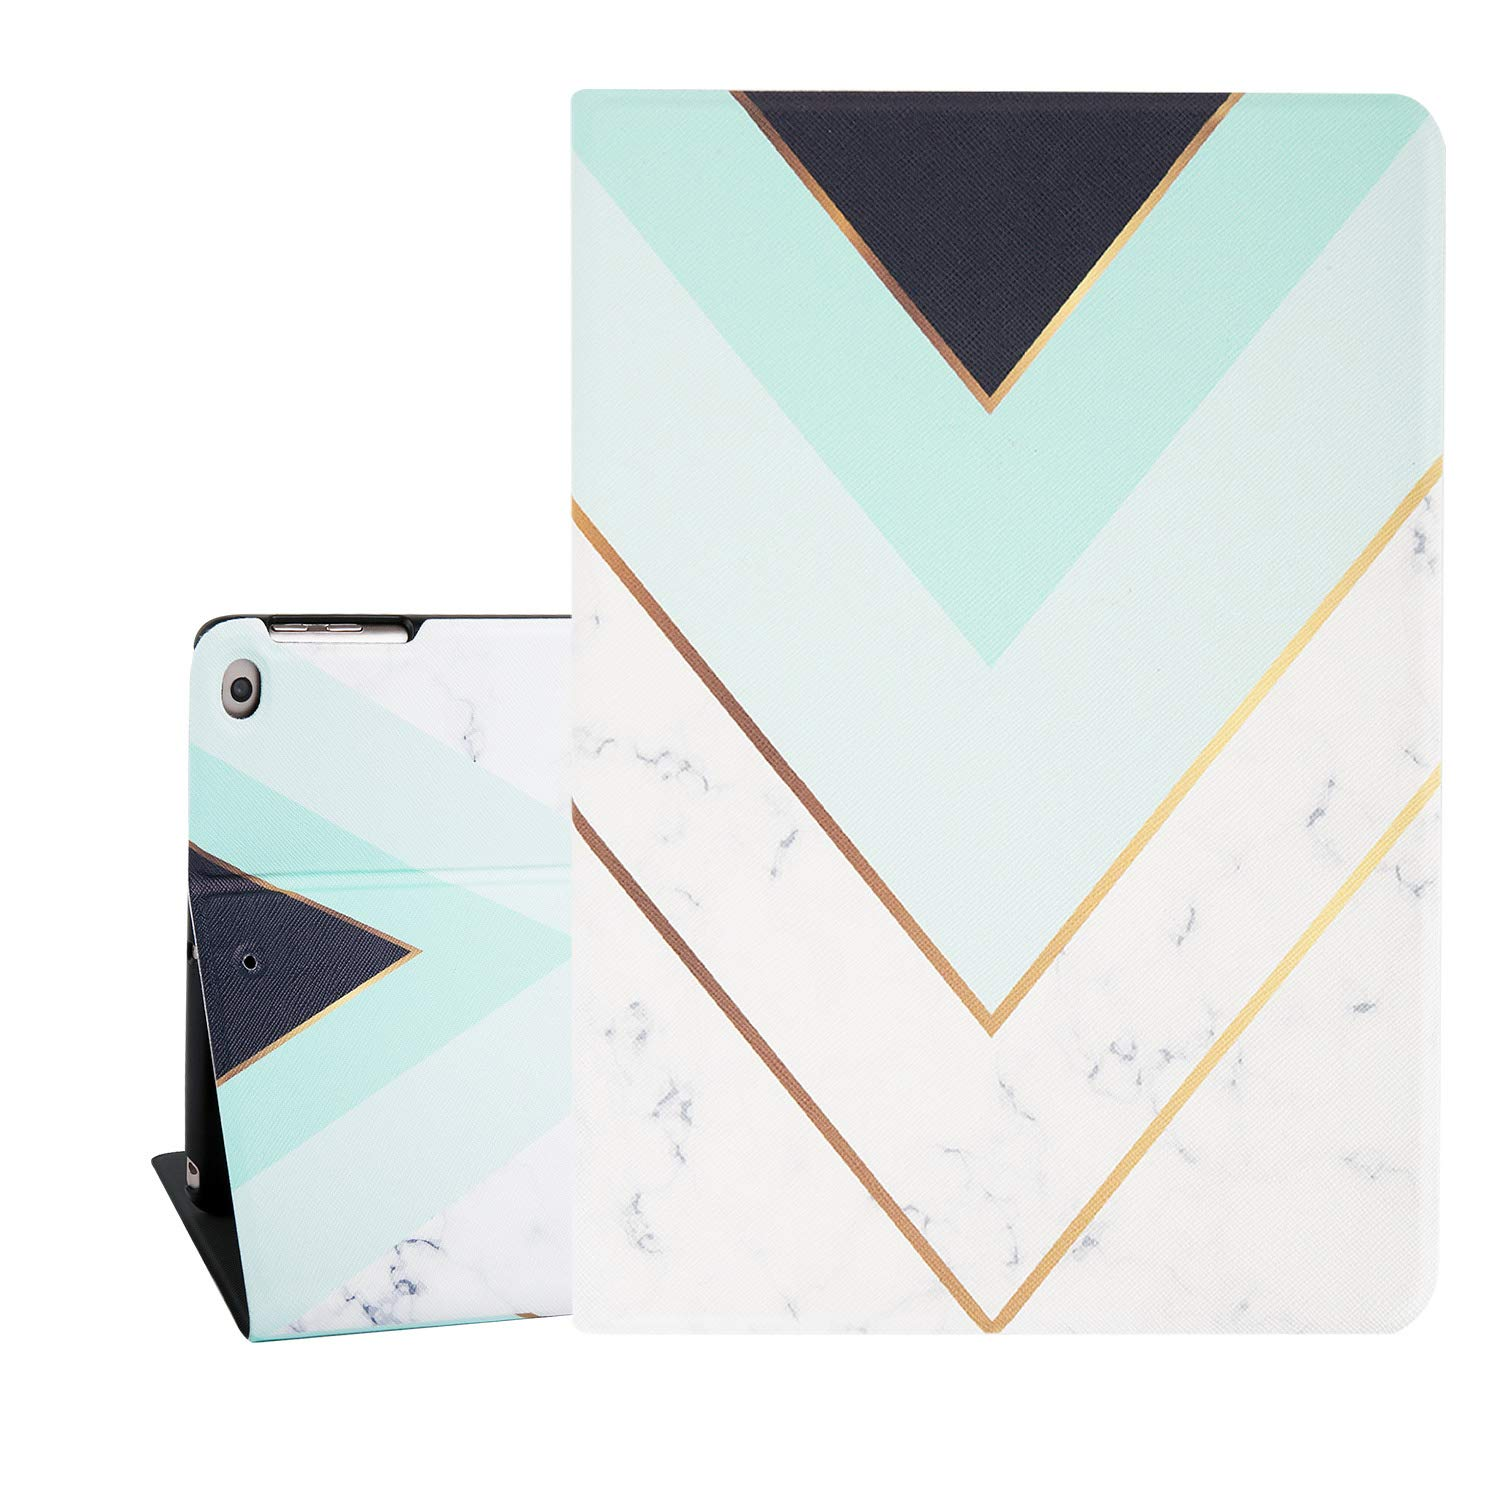 Hi Space White Marble iPad Air 9.7 Case, Golden Mint Green Black Stripes Smart Tablet Case for iPad Air 1/2 5th/6th Gen 2017/2018 Auto Sleep Wakeup